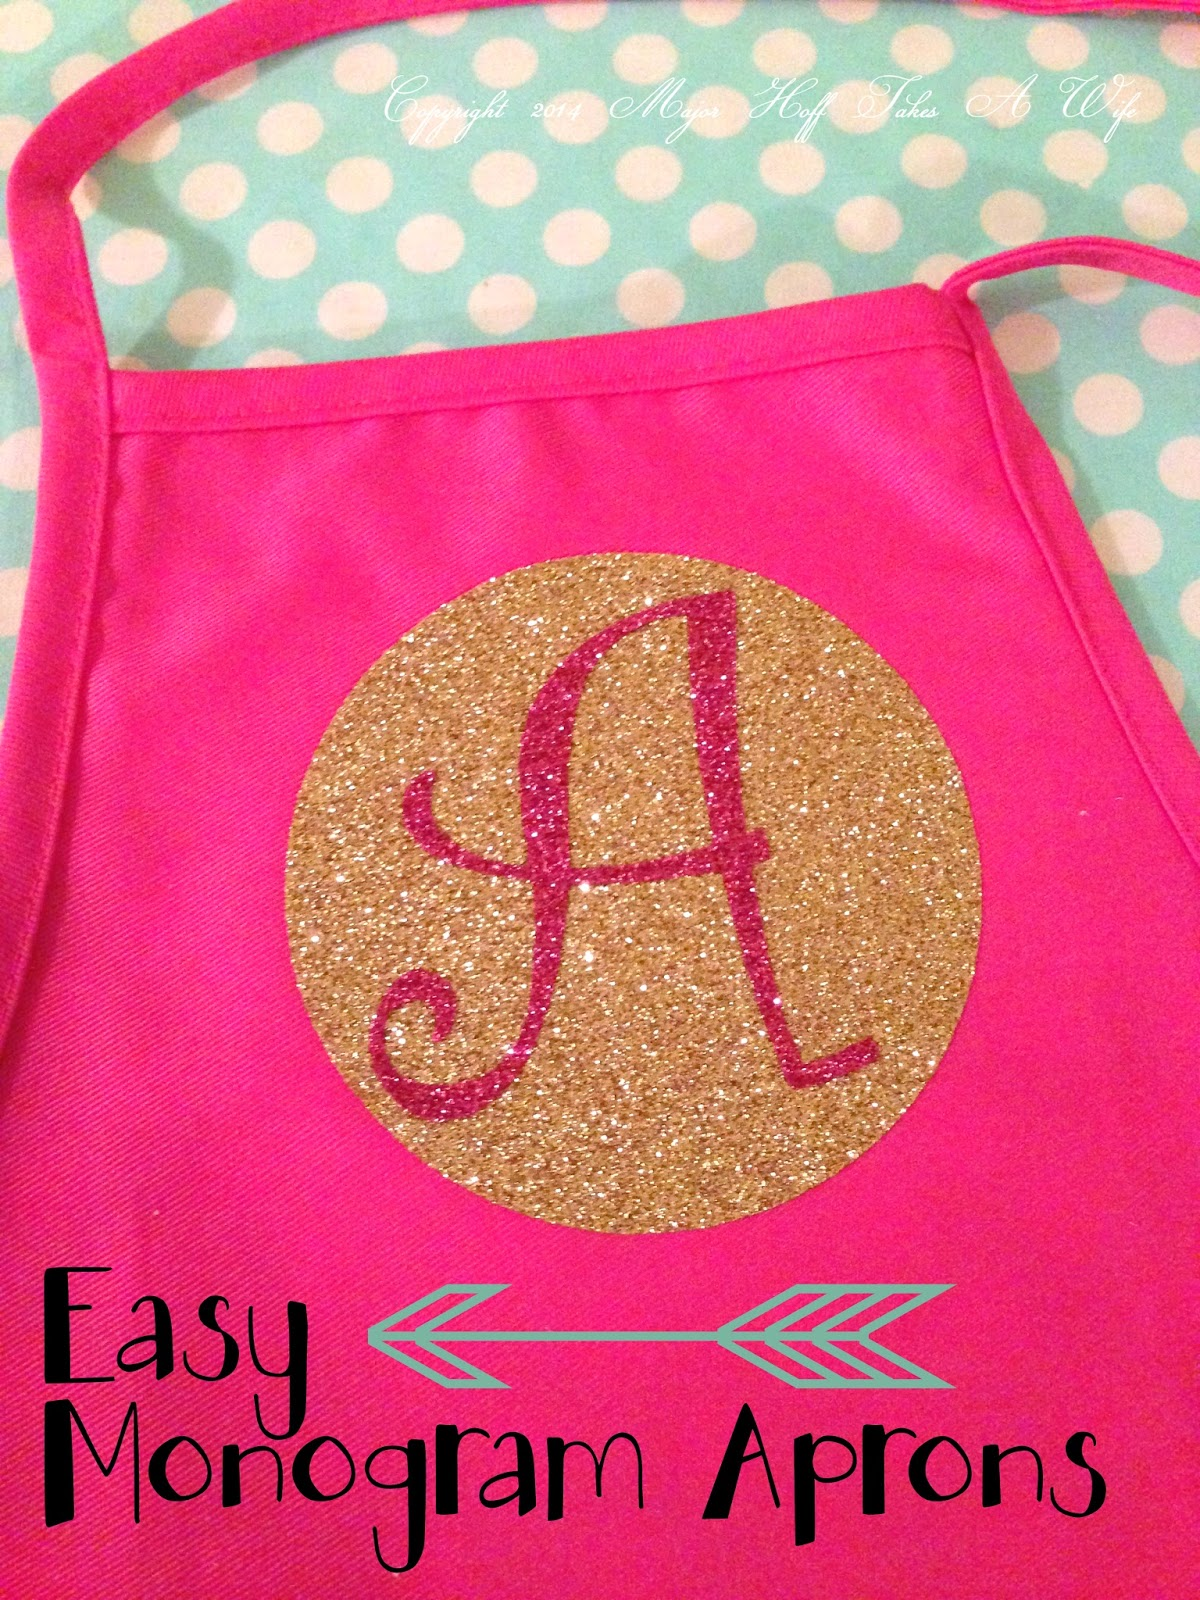 White apron hobby lobby - How To Make Custom Boutique Style Aprons With Iron On Glitter Vinyl